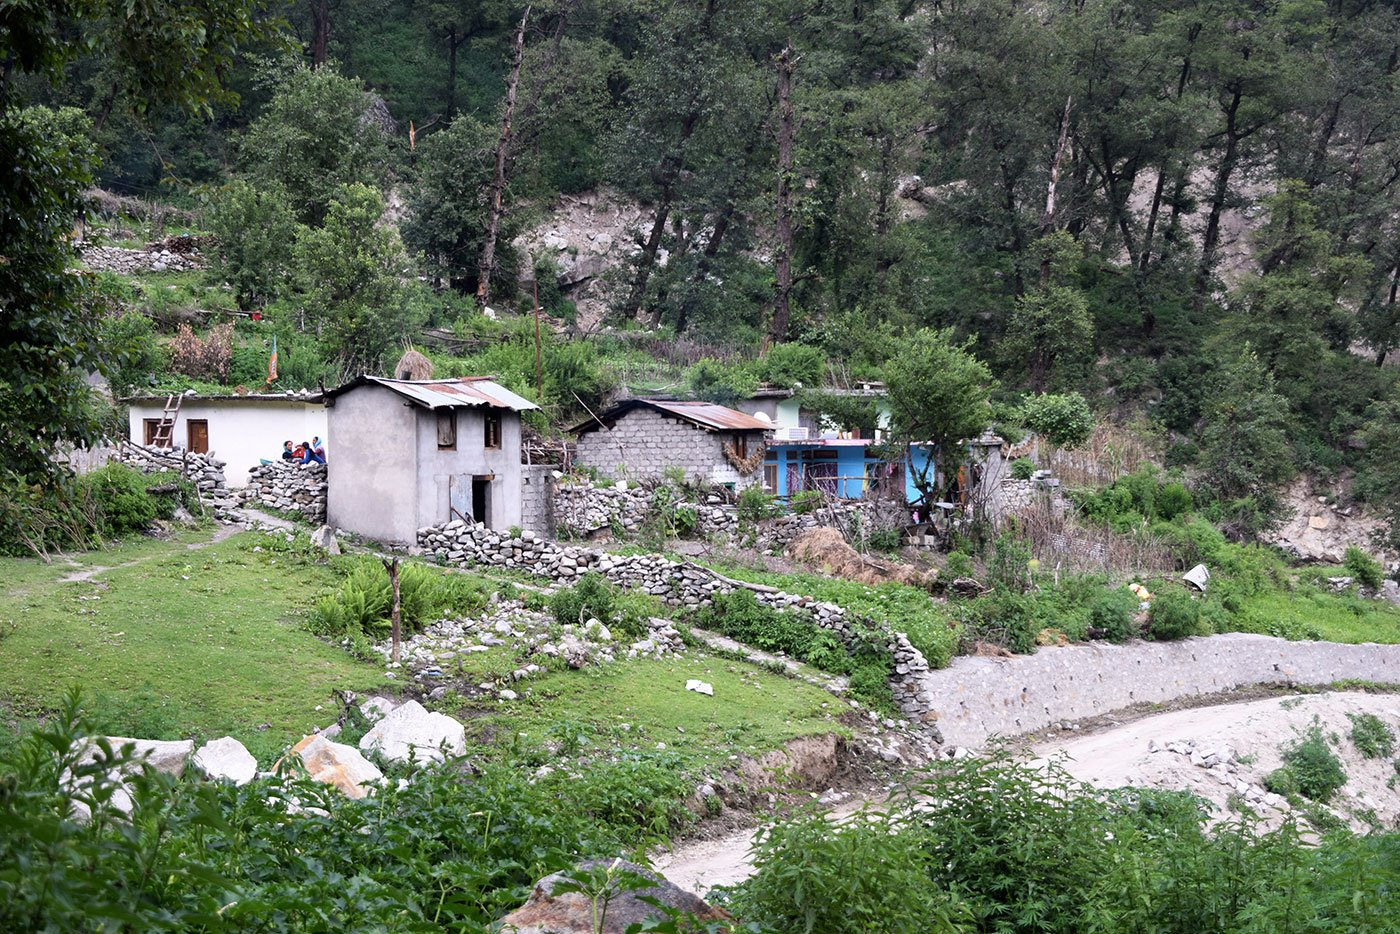 Keeda-jadi has transformed villages around Dharchula. New houses and shops have sprouted around